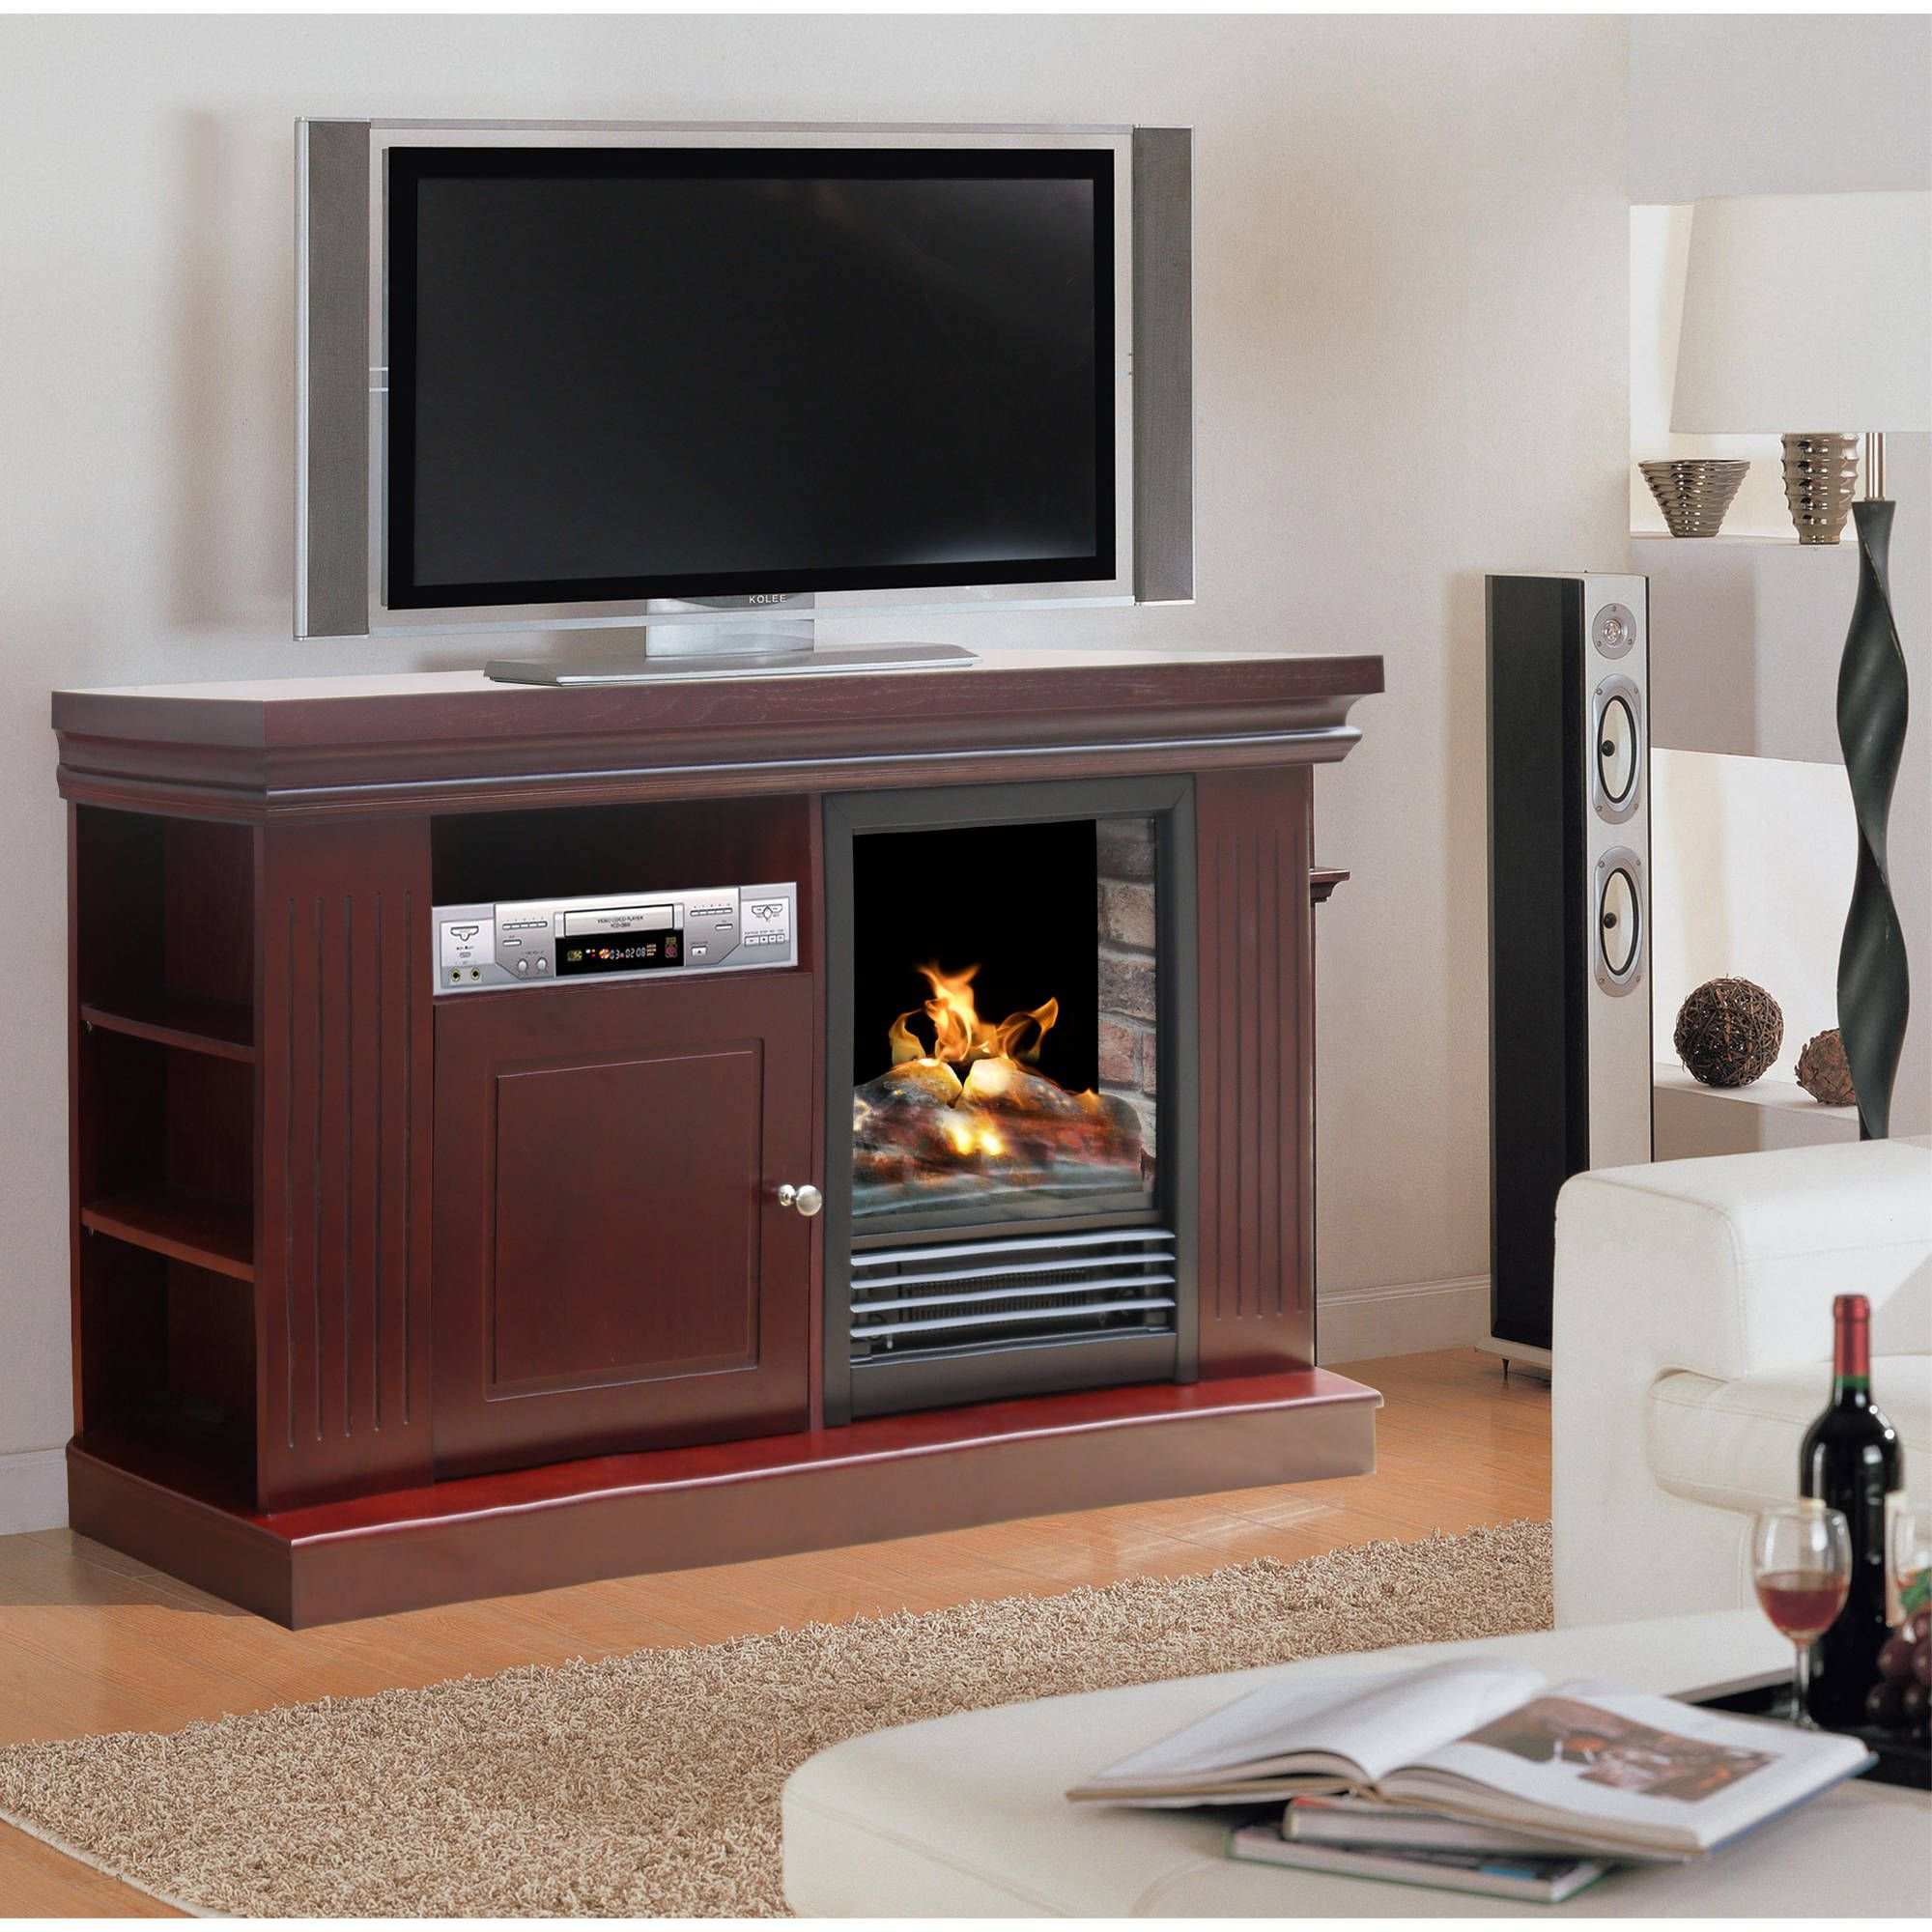 80b7cdde8219892d1afe7612aed76473 Top Result 50 Awesome Corner Electric Fireplace Pic 2018 Jdt4